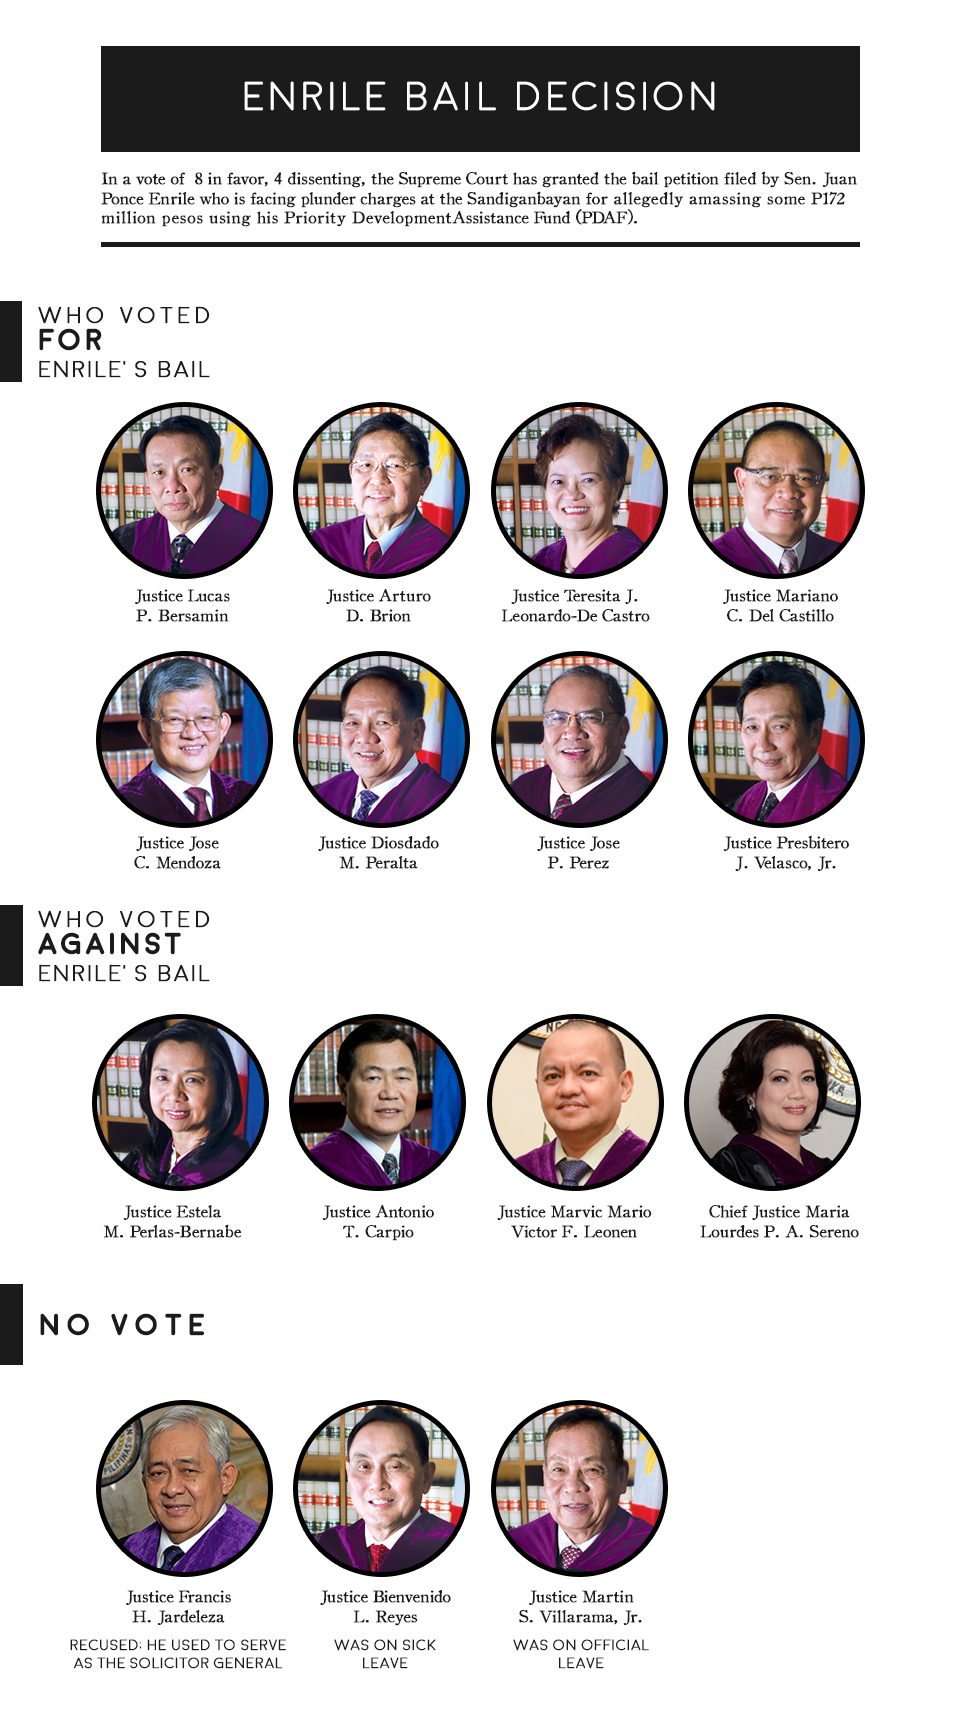 Justices Who Vote for Enrile's Bail